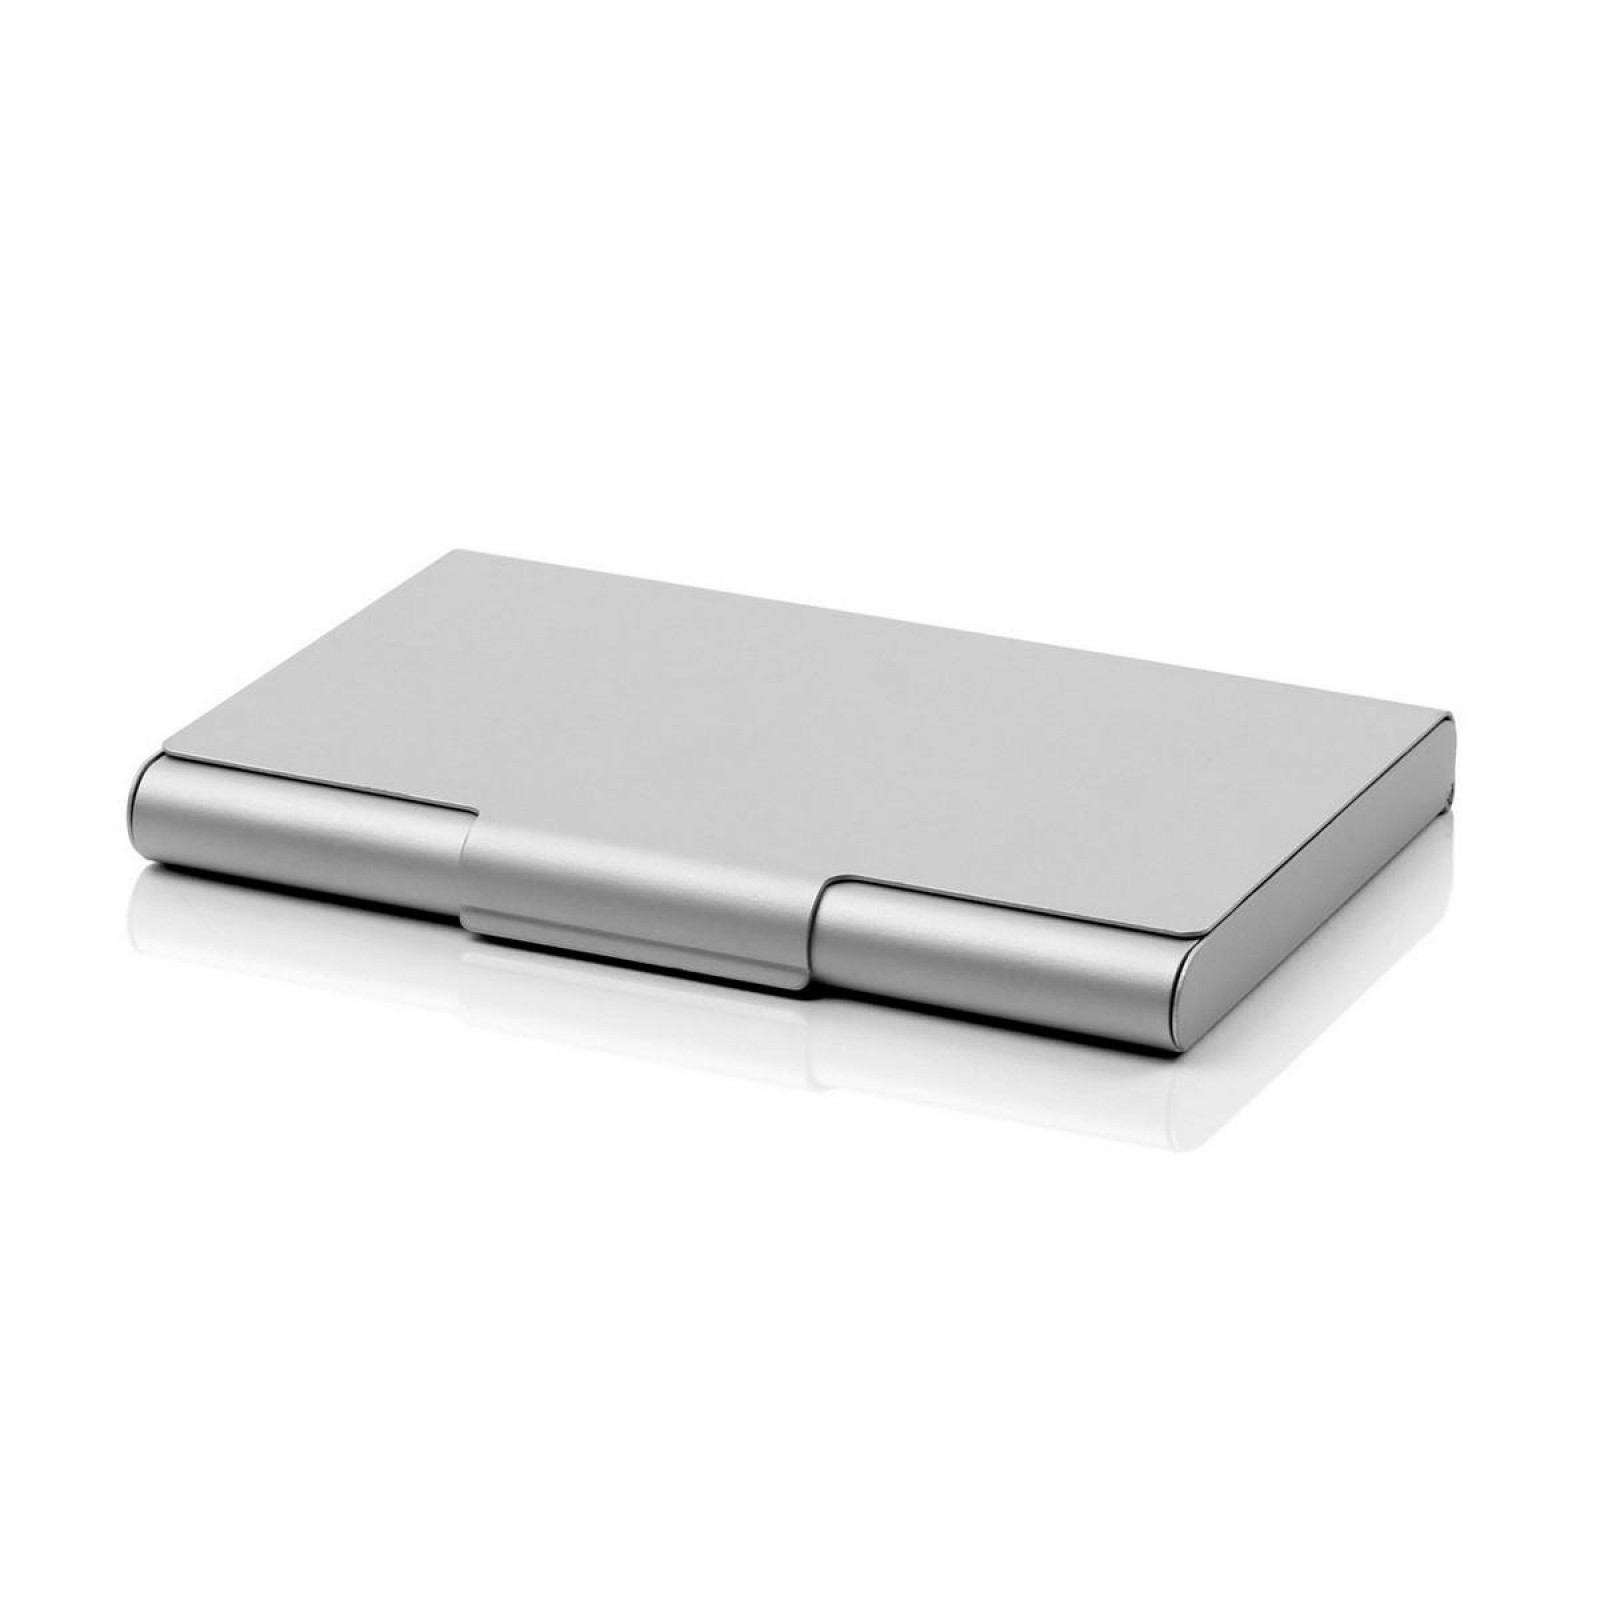 Card Box 20 Business Card Case (Silver) - LEXON